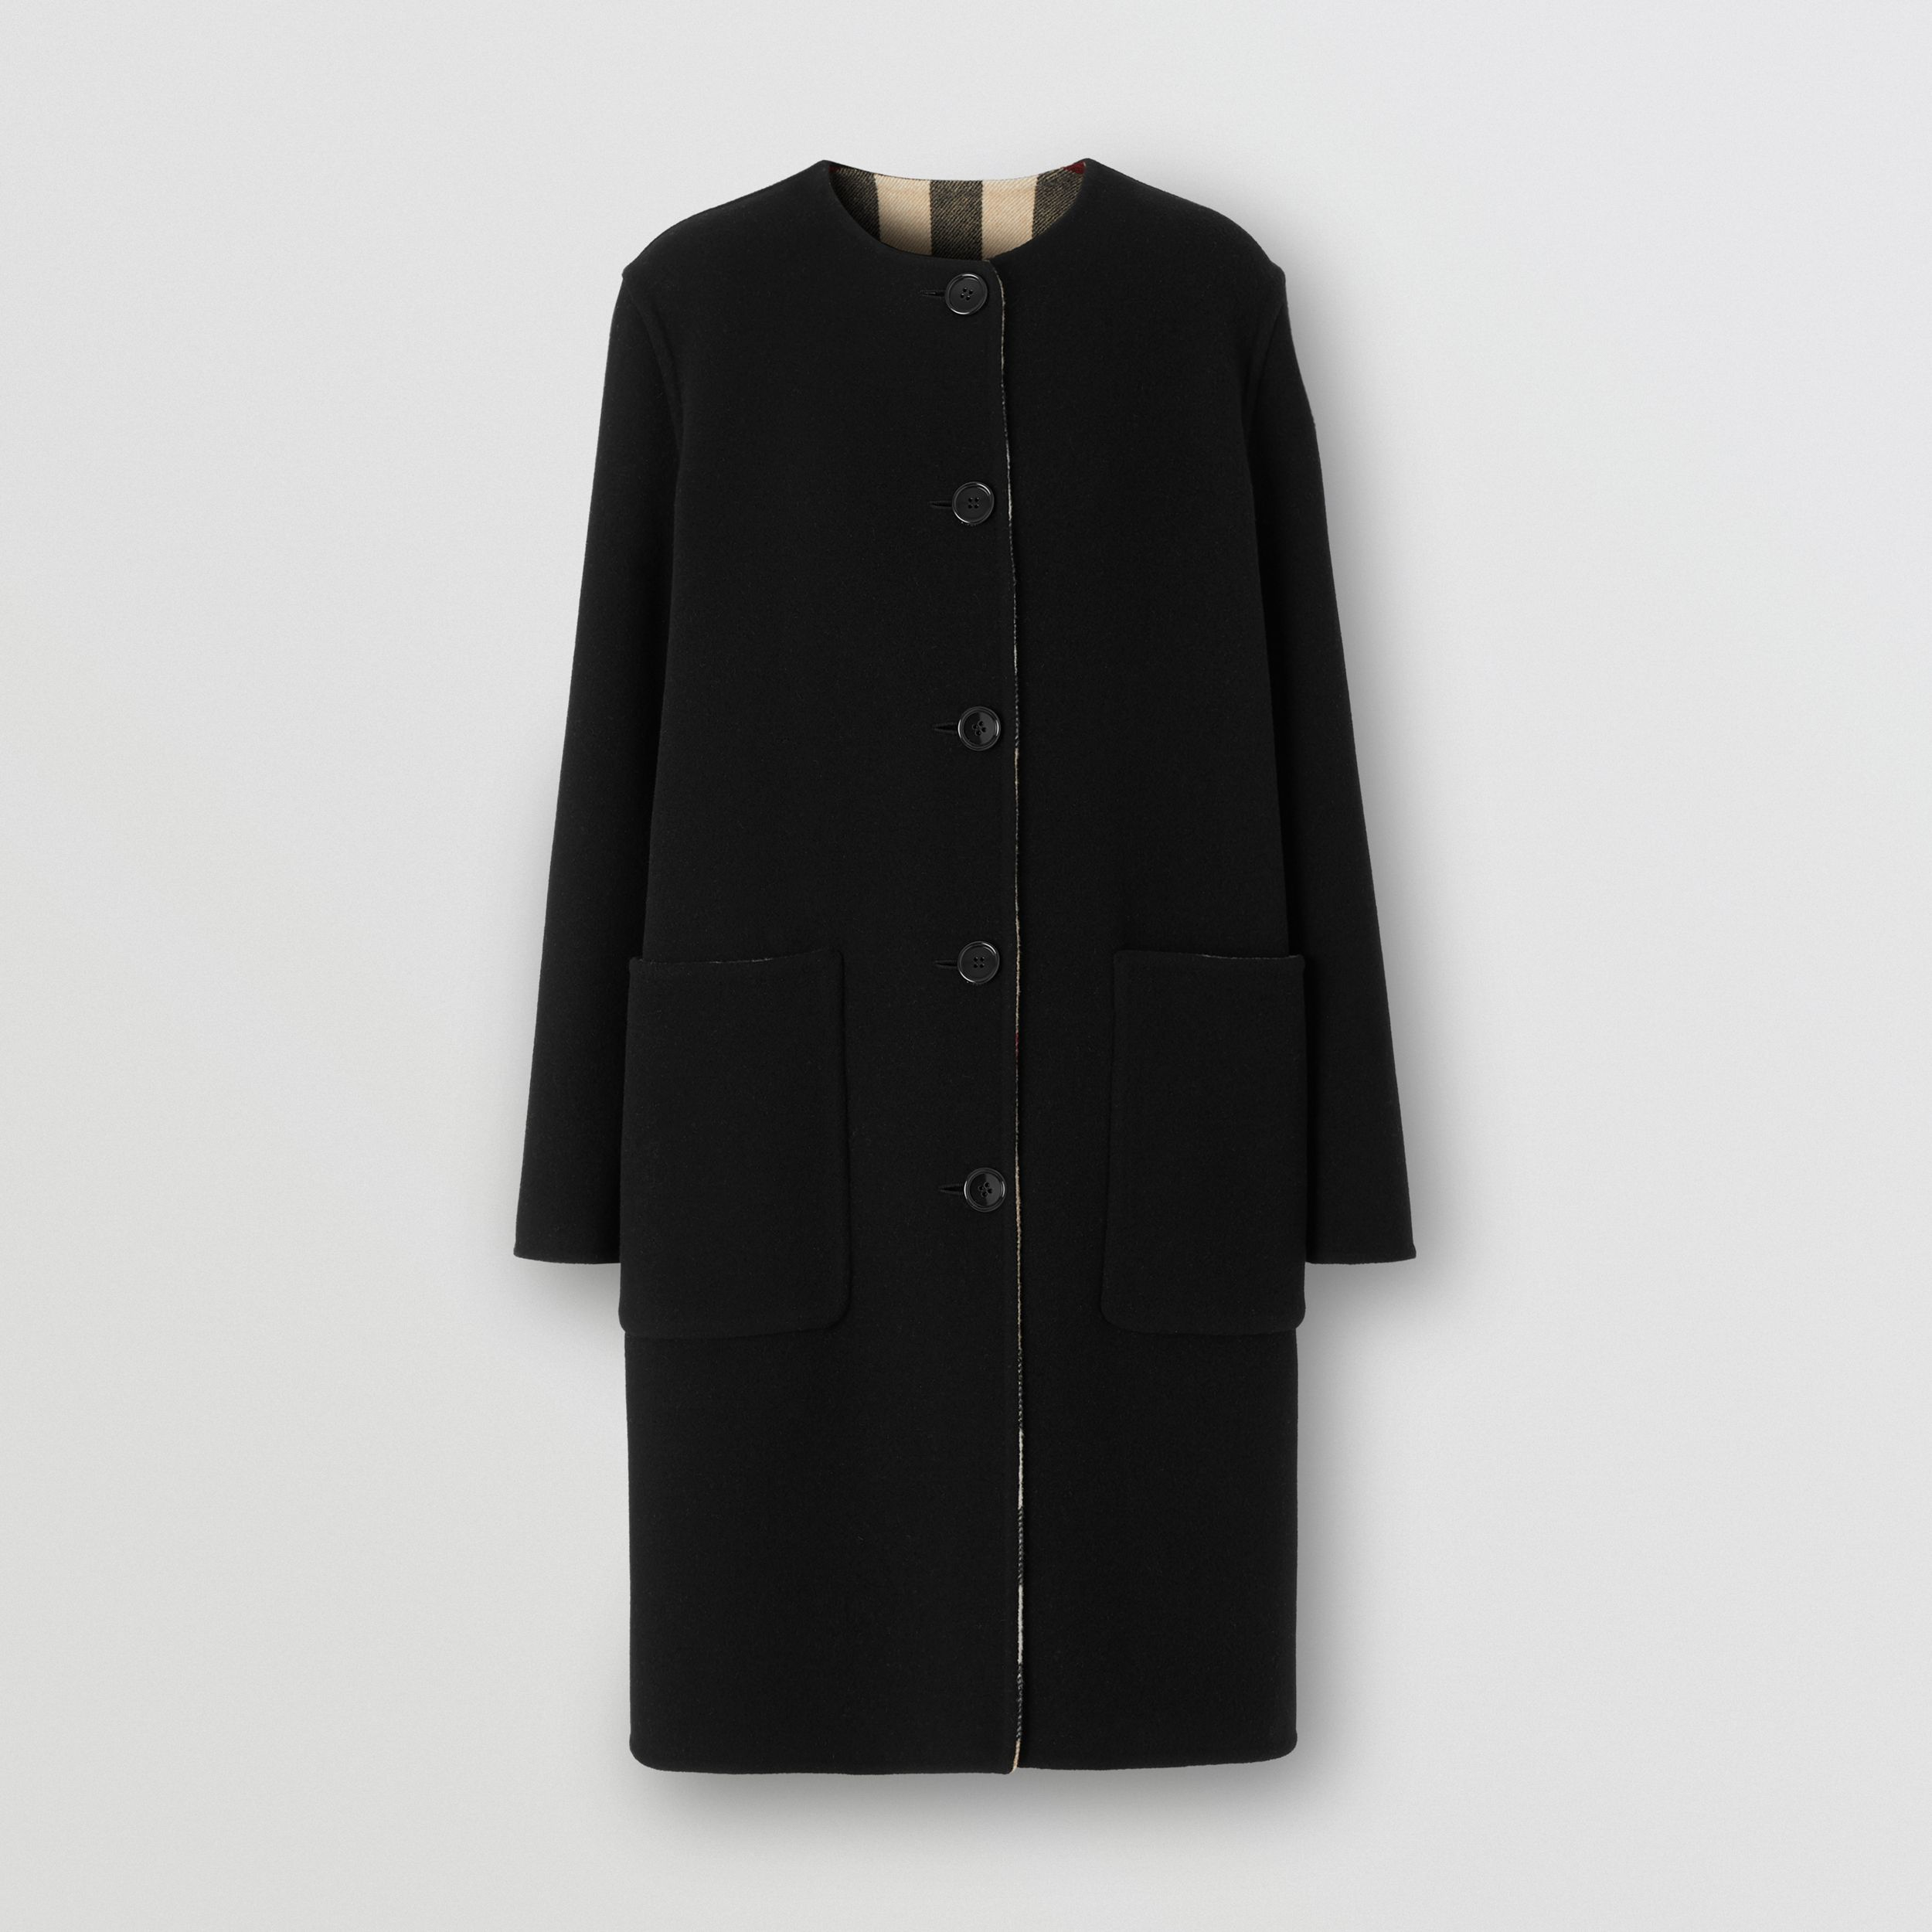 Reversible Check Technical Wool Coat in Black - Women | Burberry - 4